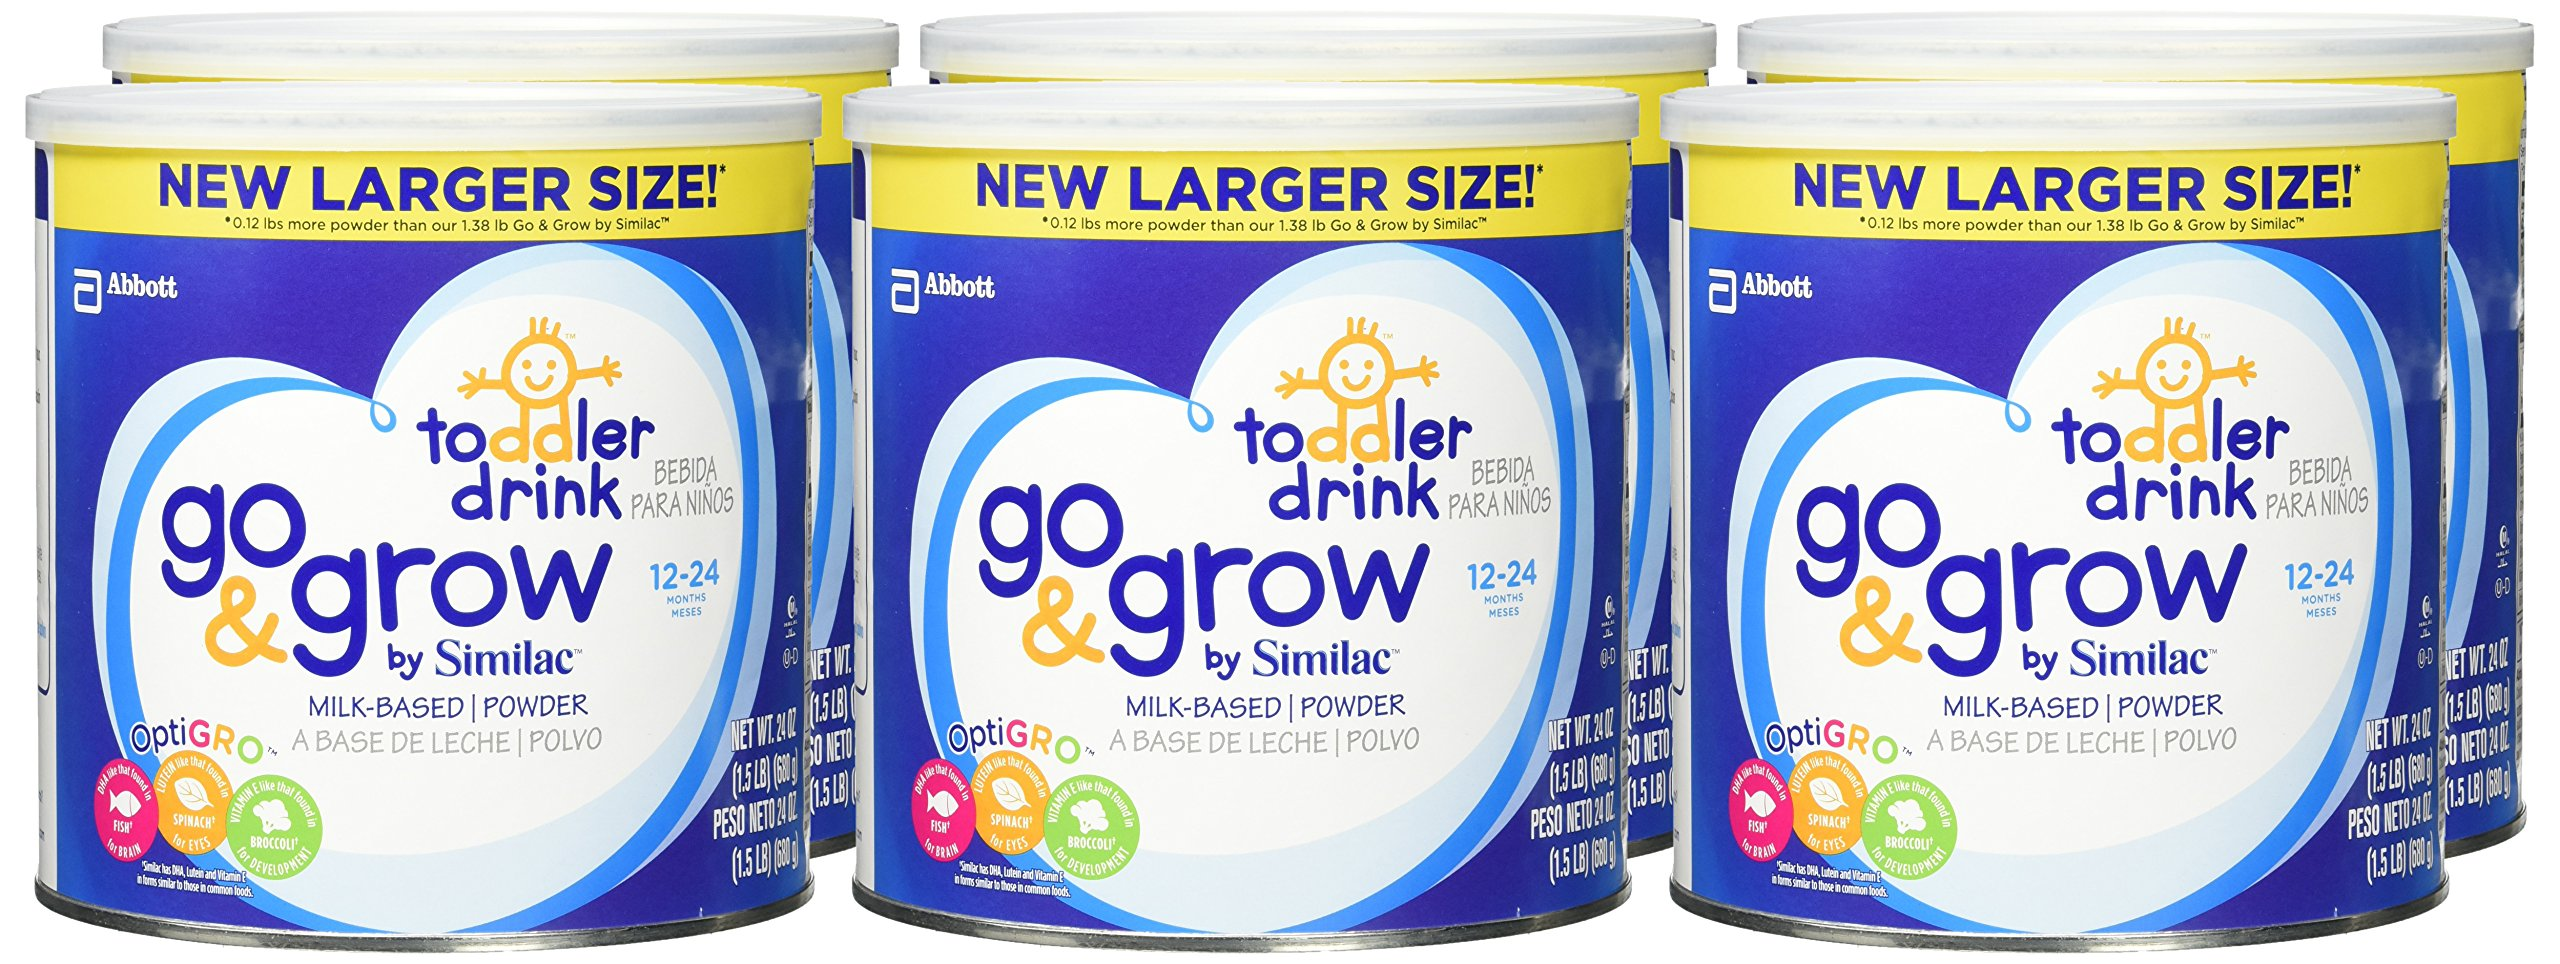 Go & Grow By Similac Milk Based Toddler Drink, Large Size Powder, 24 ounces (Pack of 6) by Similac (Image #2)